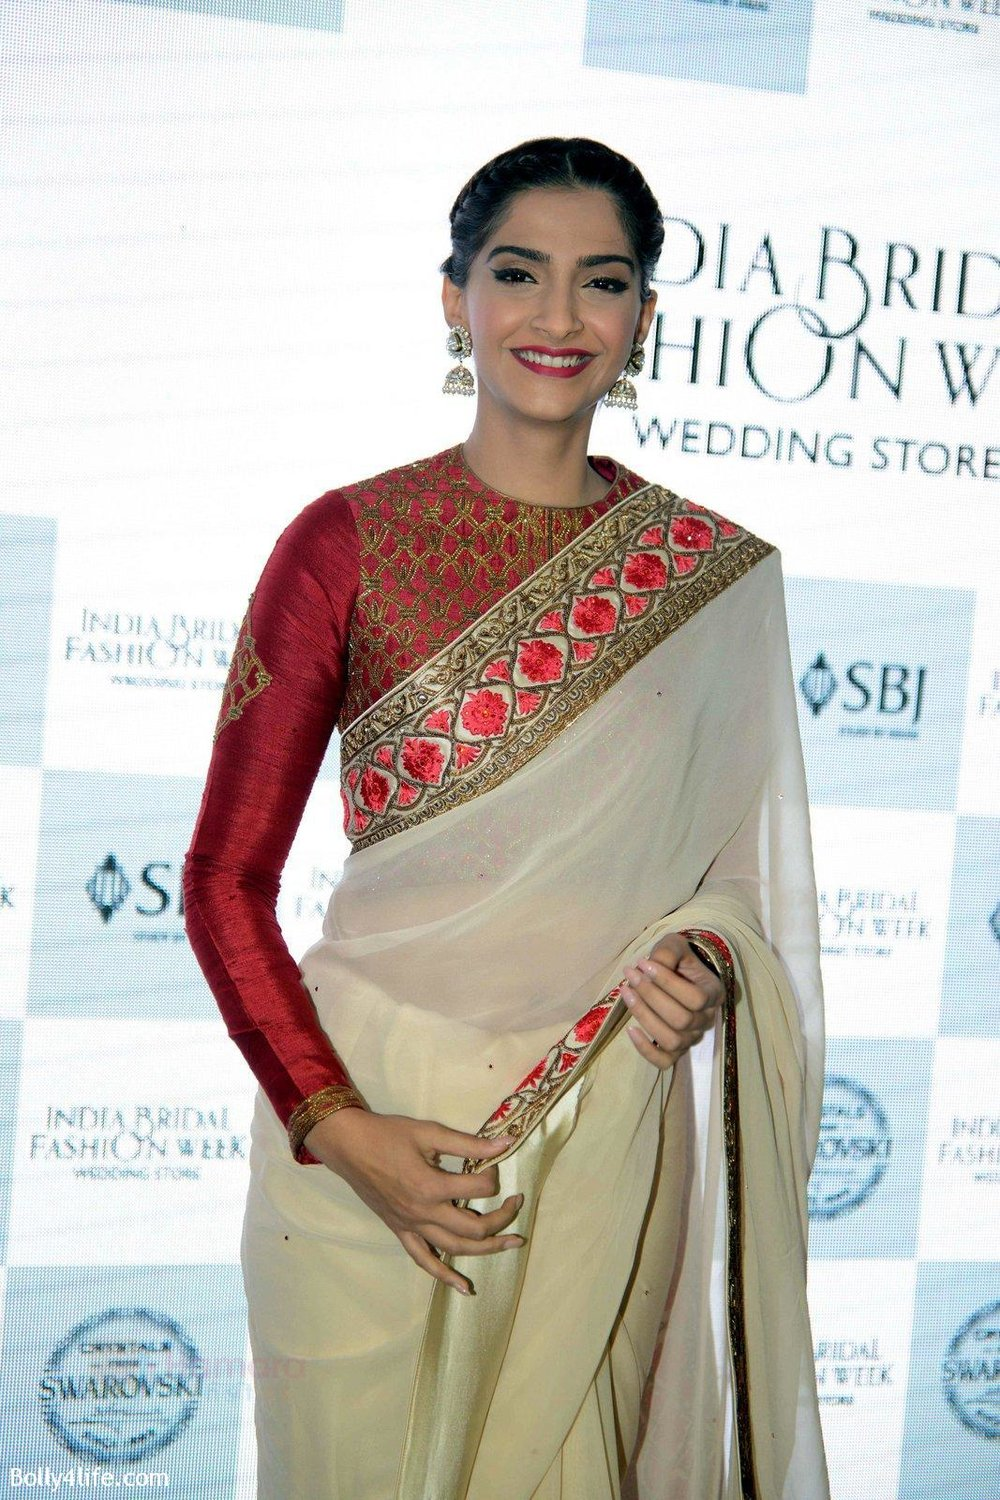 Sonam-Kapoor-during-the-launch-of-the-first-Indian-Bridal-Fashion-Week-Wedding-Store-in-New-Delhi-on-9th-Sept-2016-26.jpg